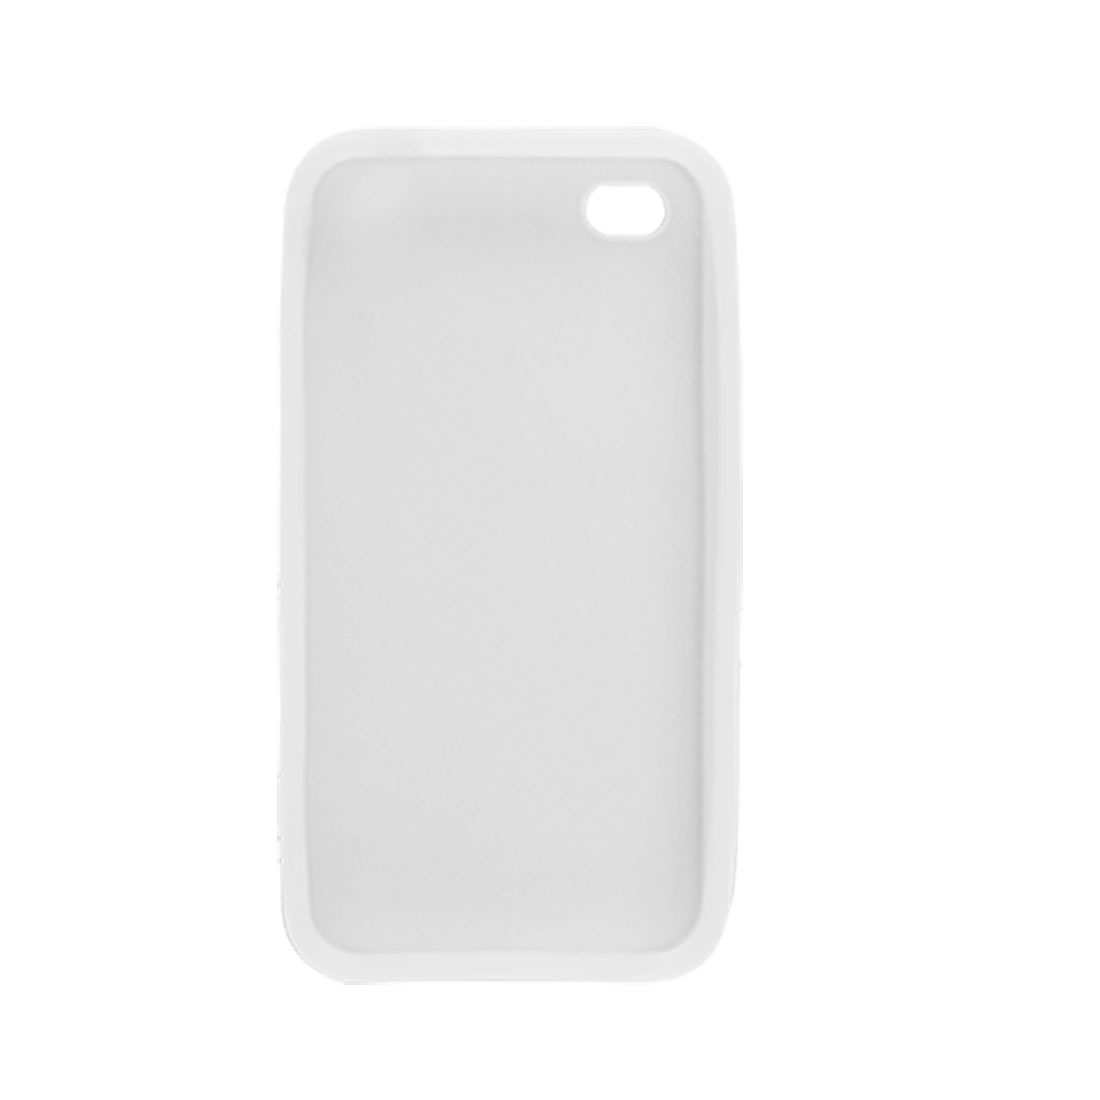 White Protective Silicone Skin Case for Apple iPhone 4 4G